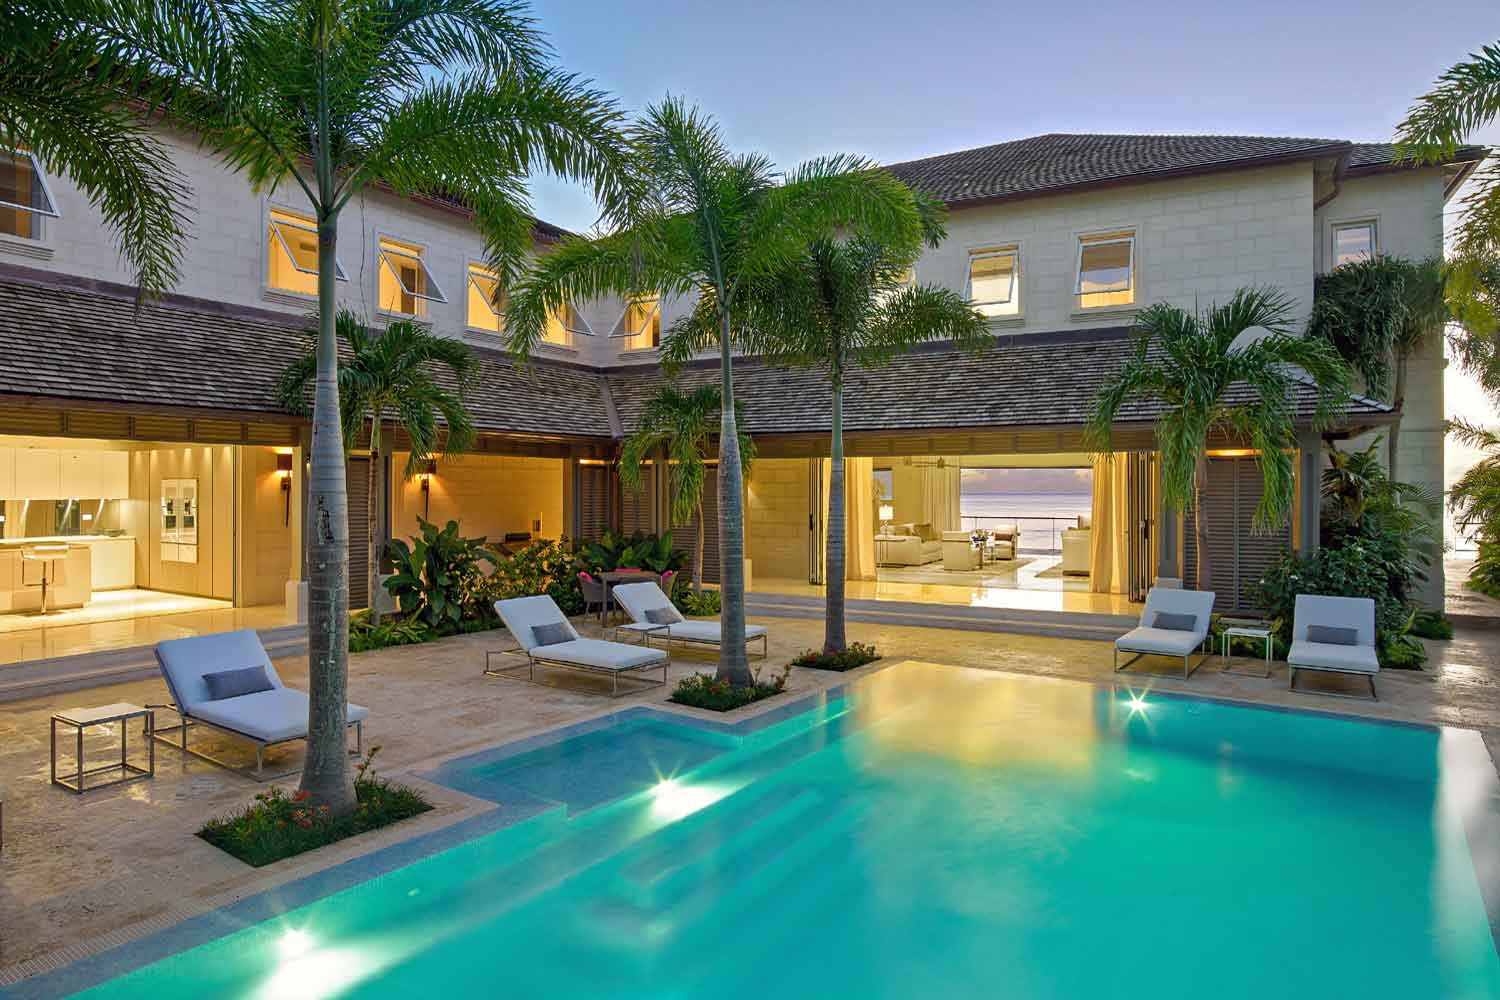 <b>Prospect, Barbados</b><br/><i>6 Bedrooms, 9,200 sq. ft.</i><br/>Beachfront villa on Barbados' Platinum Coast